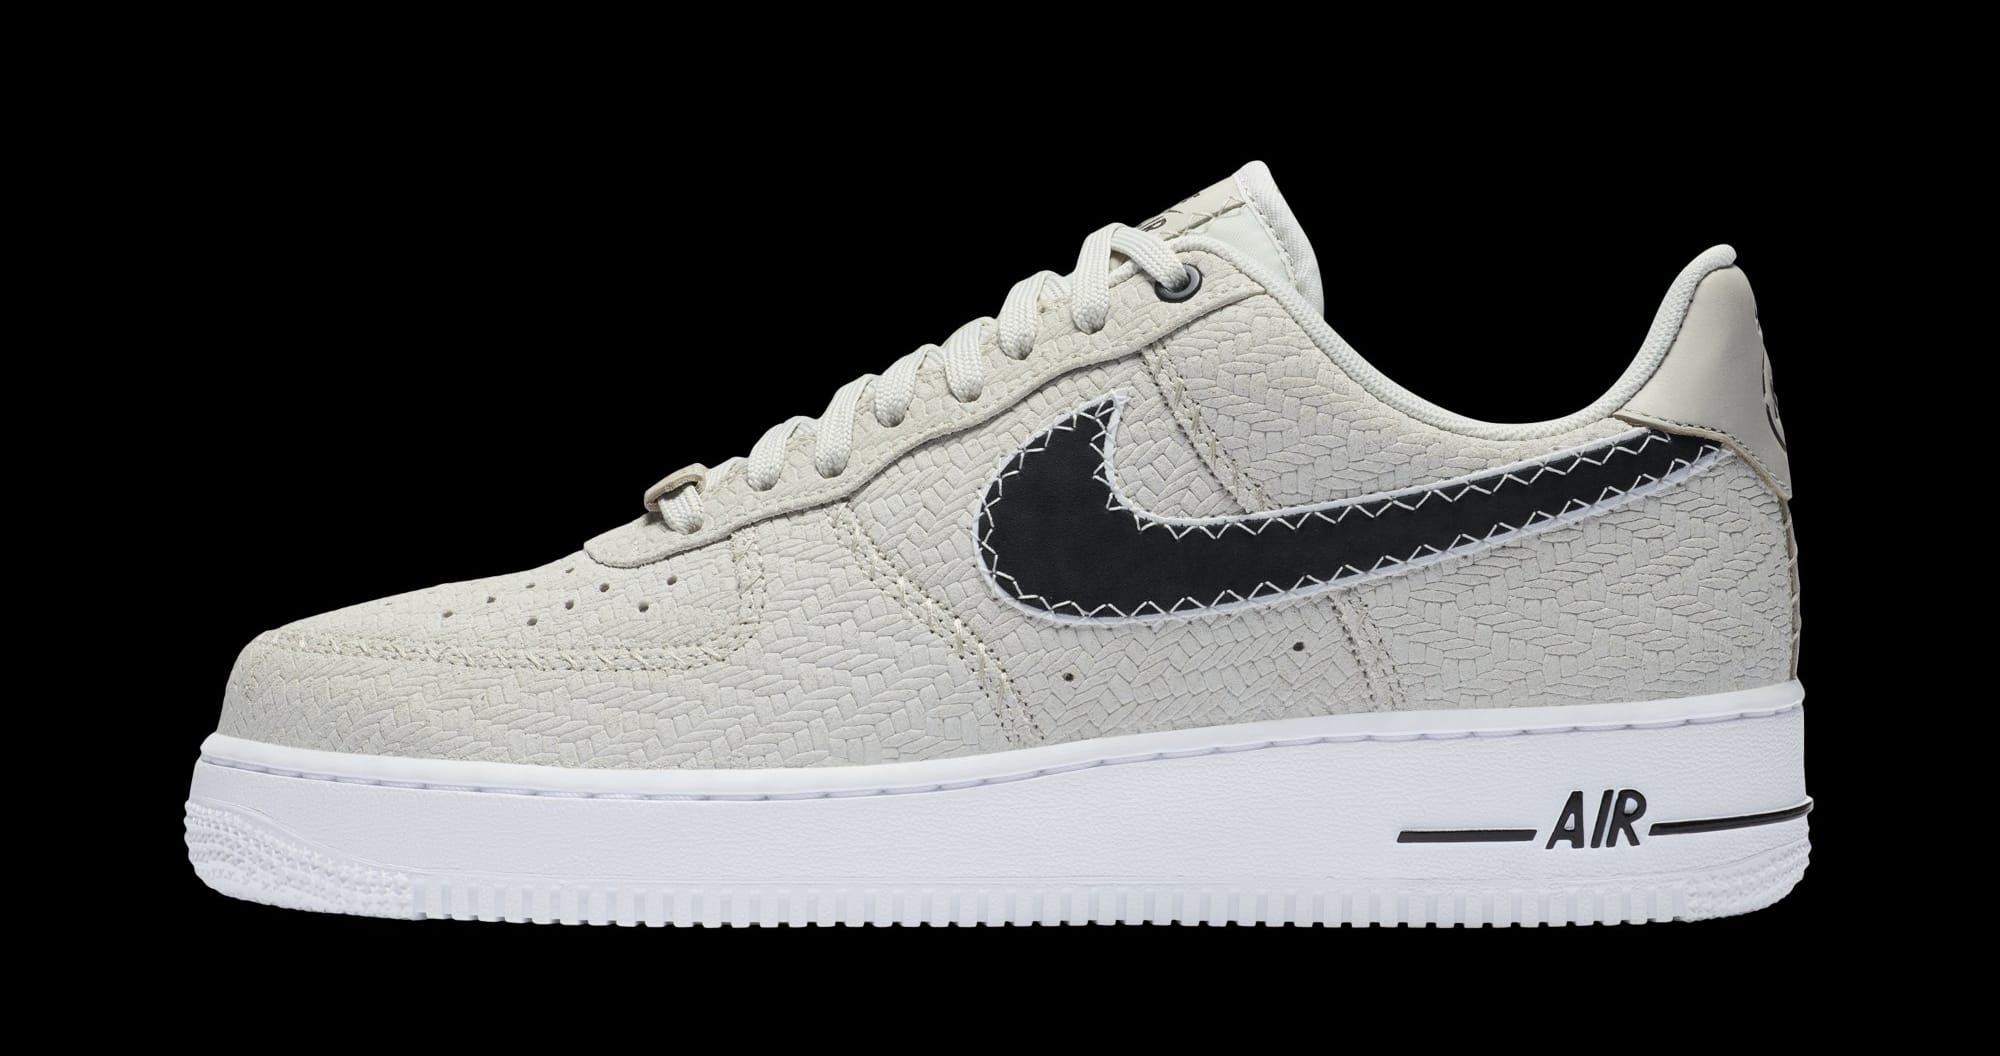 Nike Air Force 1 Low 'N7' AO2369-001 (Lateral)